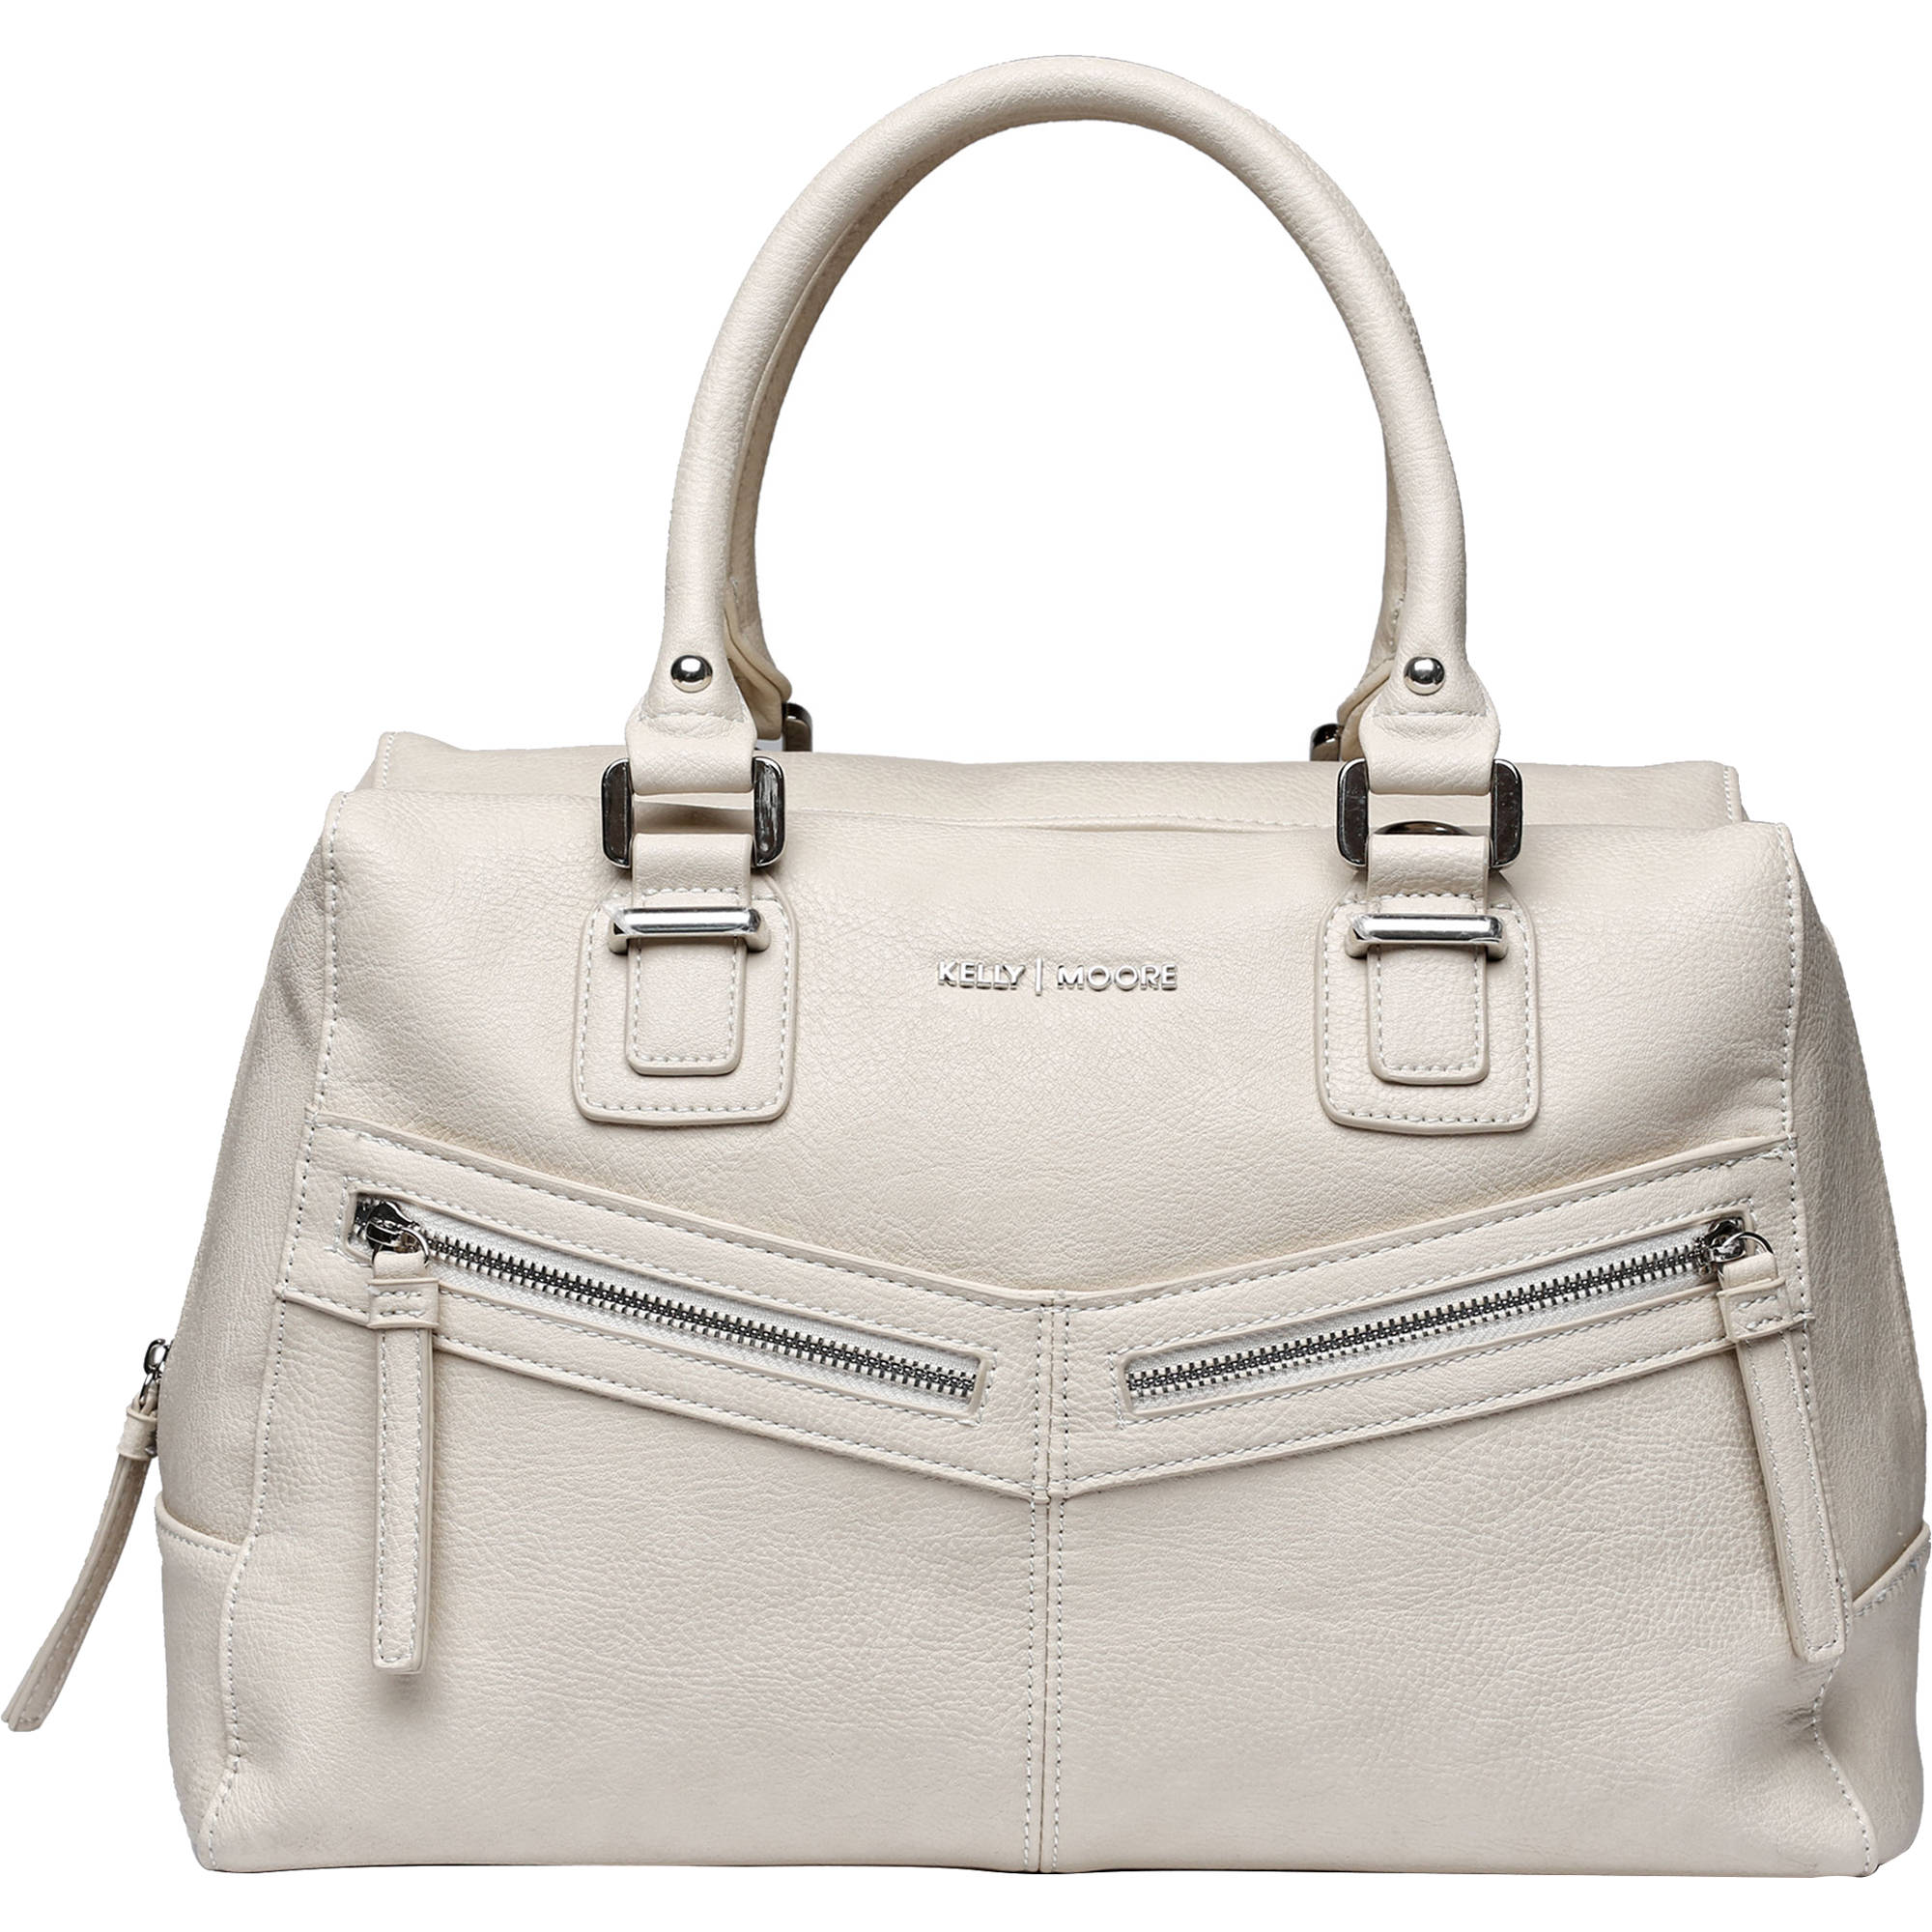 Kelly Moore Bag Ruston Bone